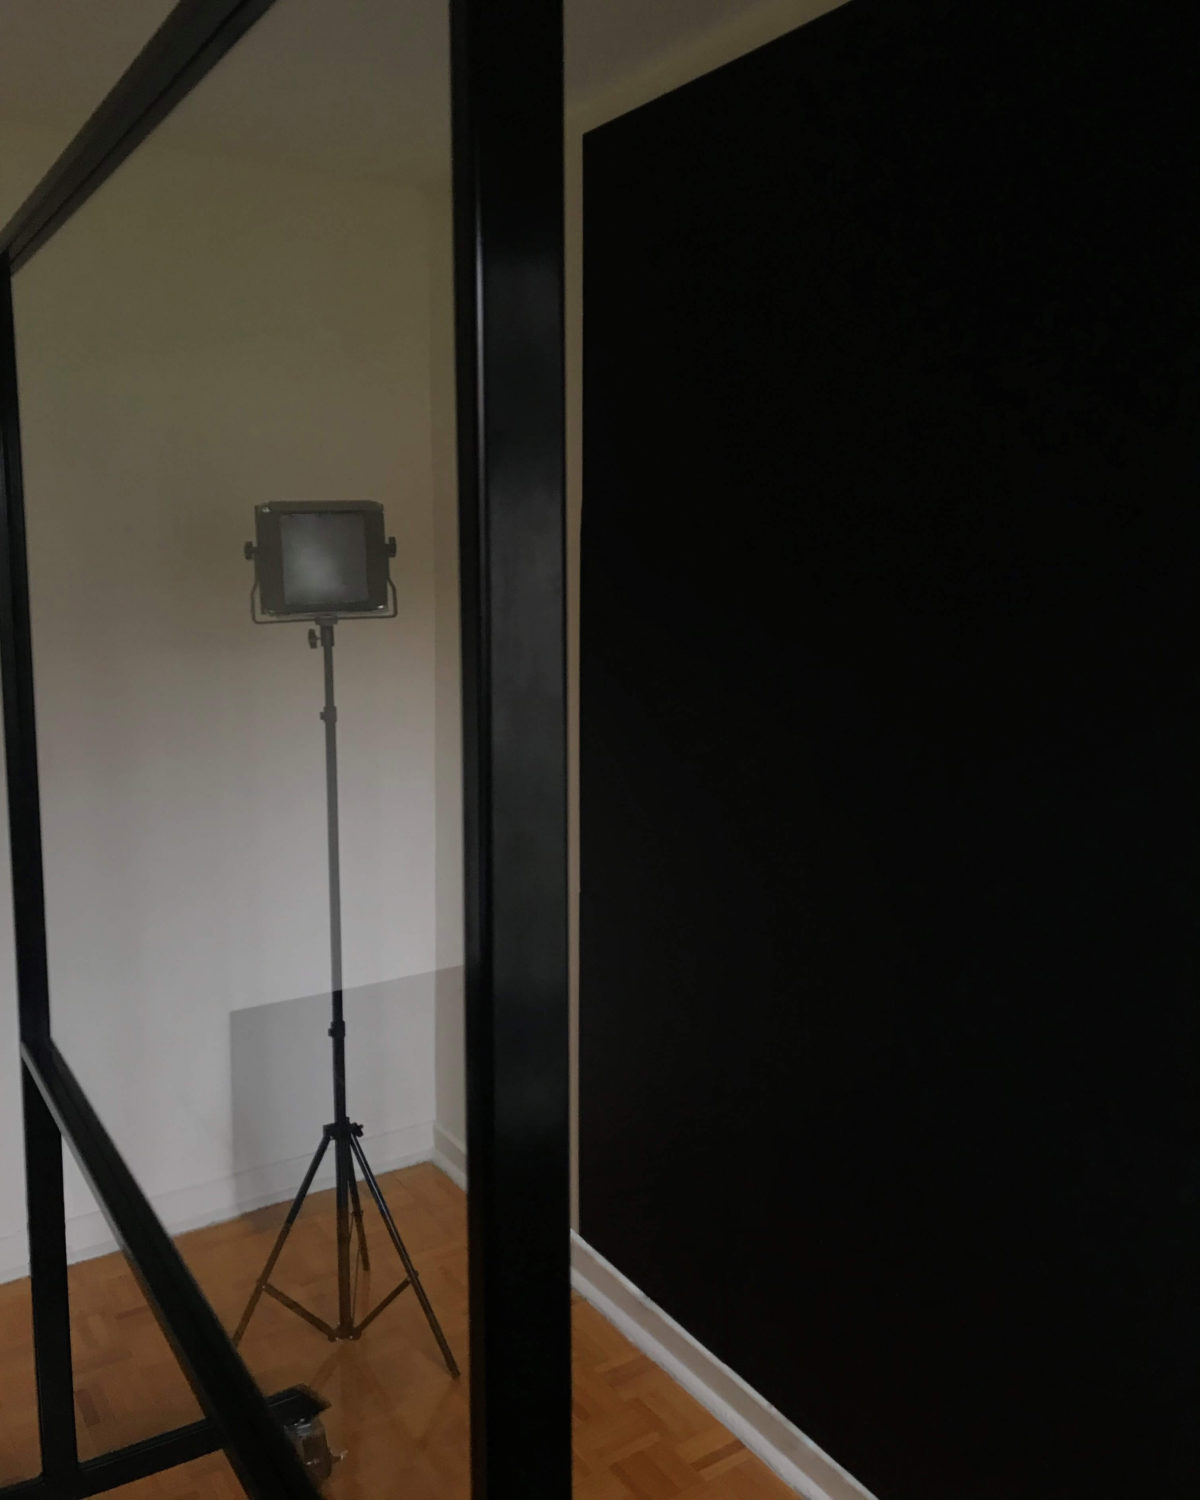 Studio package side view showing lightboard, lights and a black backdrop